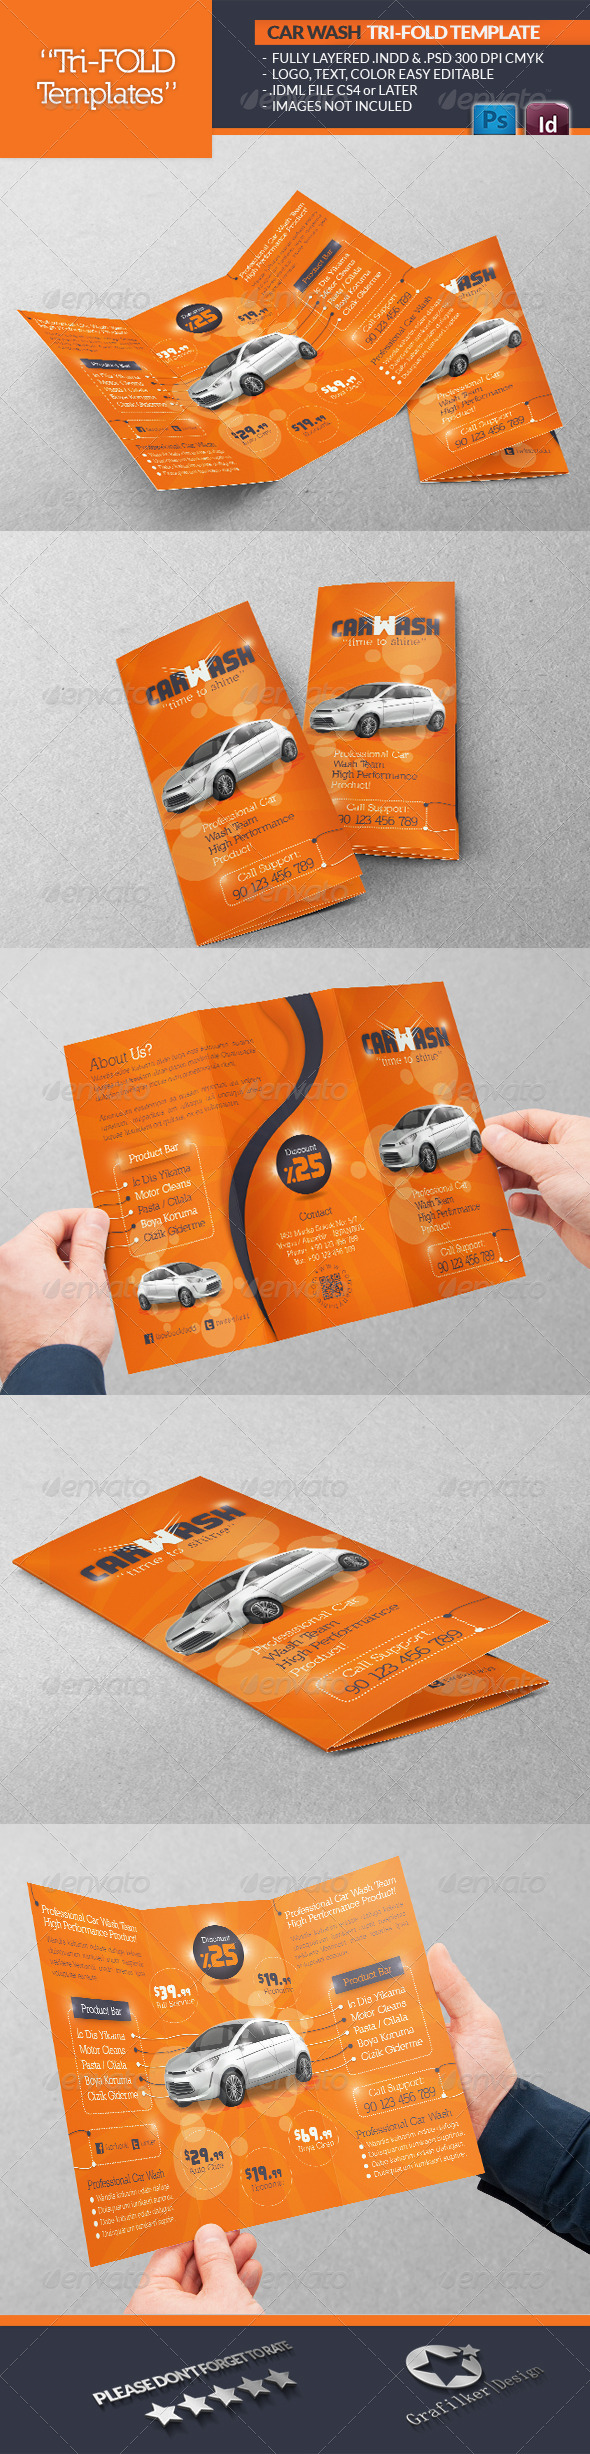 Car Wash Tri-Fold Template - Catalogs Brochures